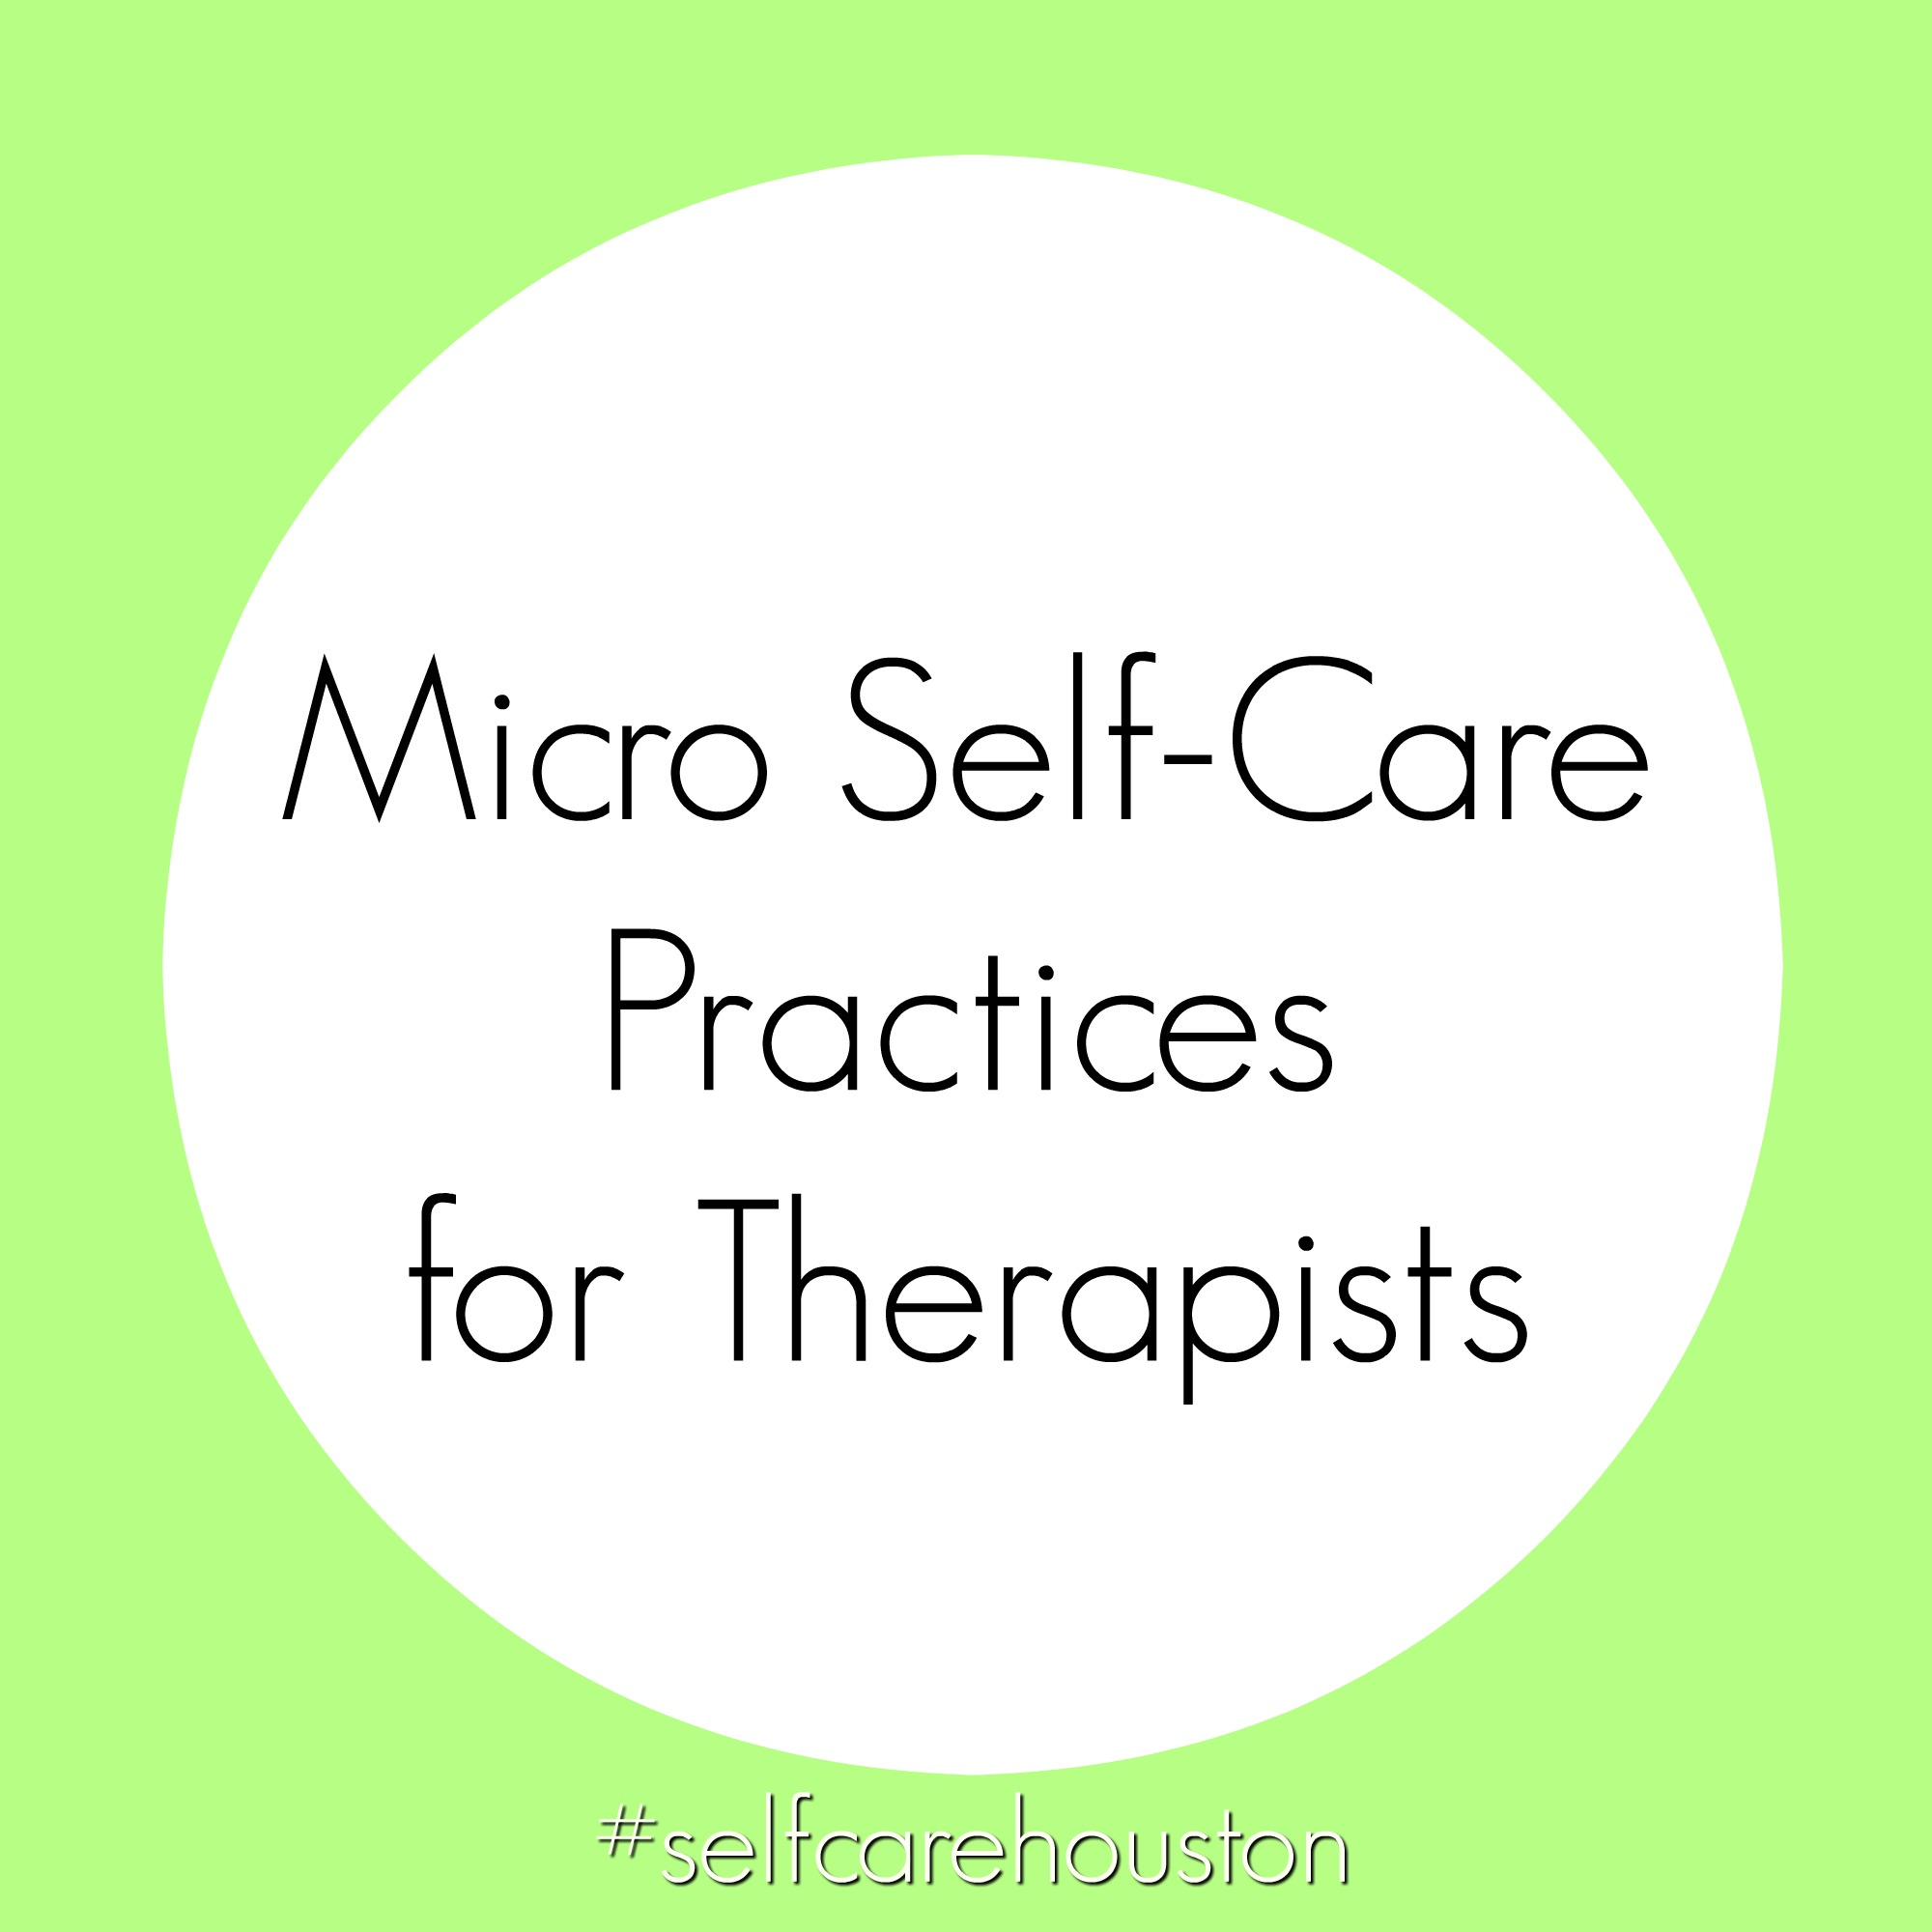 self-care for therapists